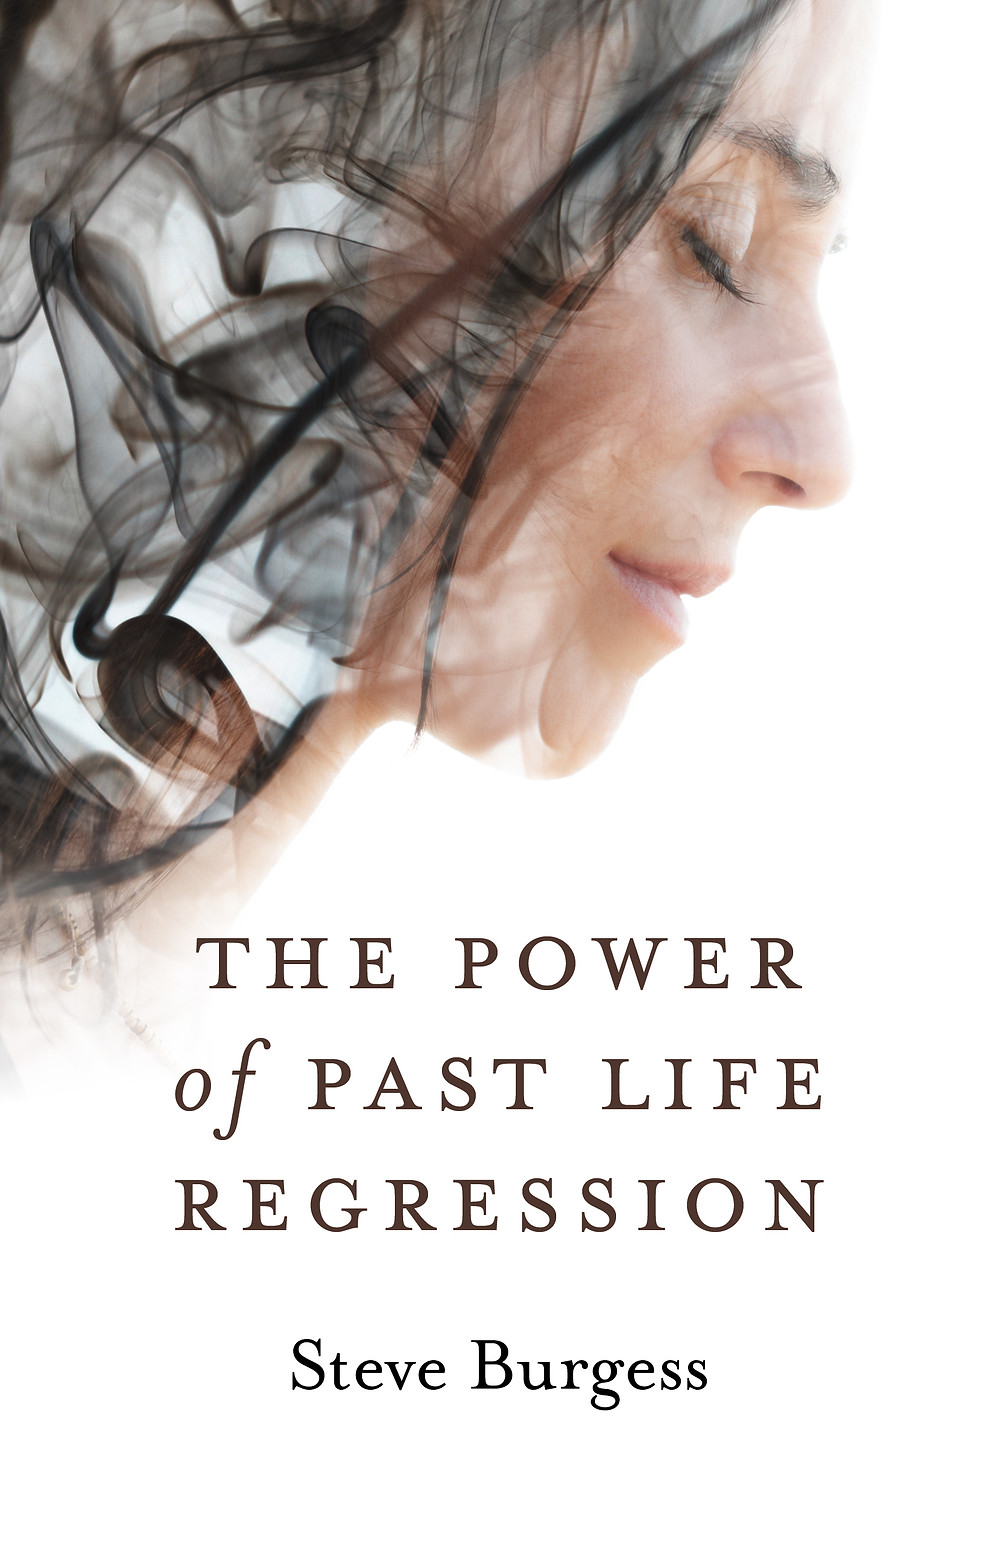 The Power of Past Life Regression